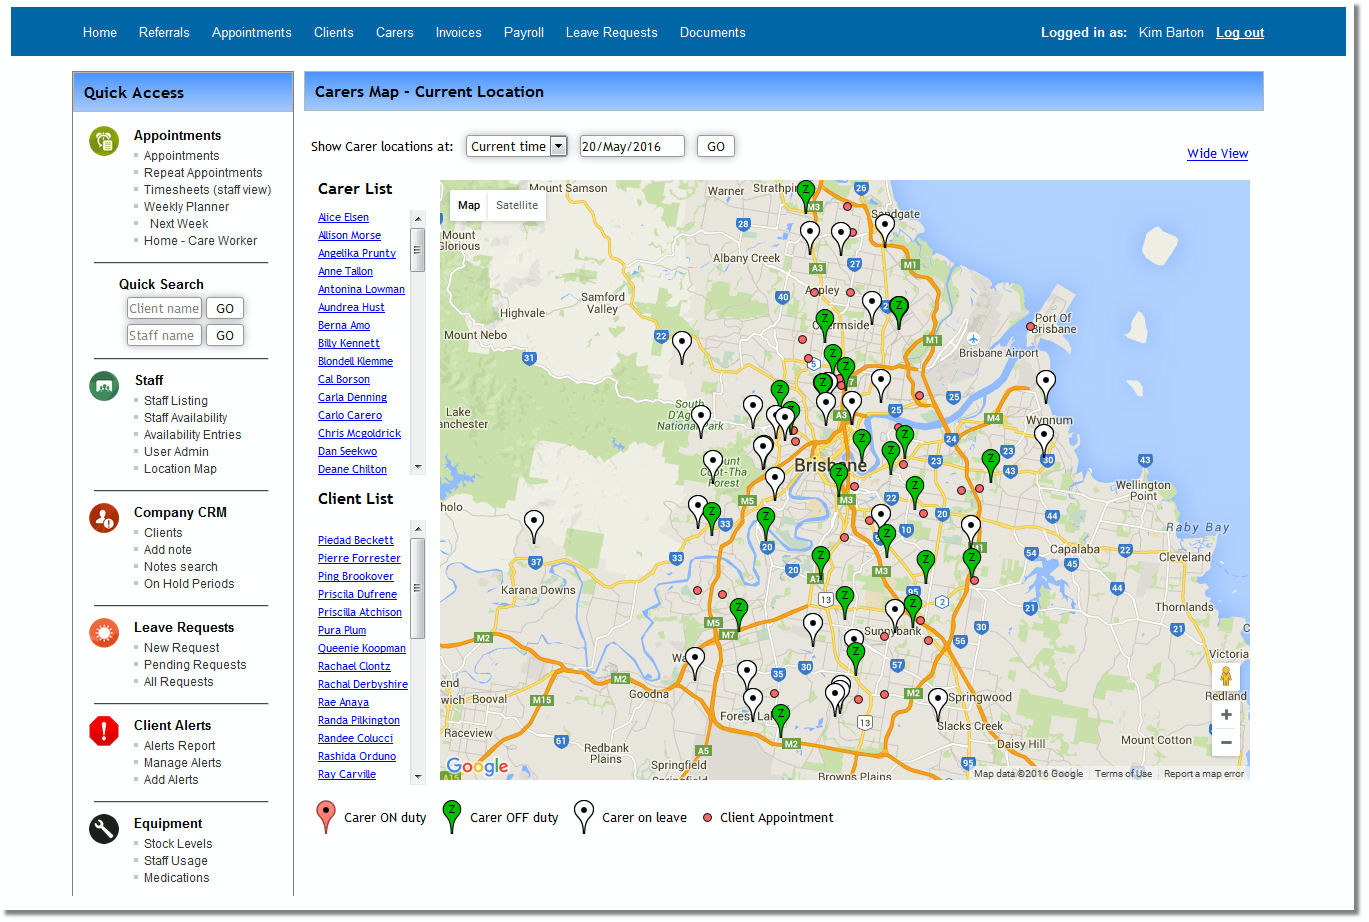 Plan routes with staffing map & journey planner